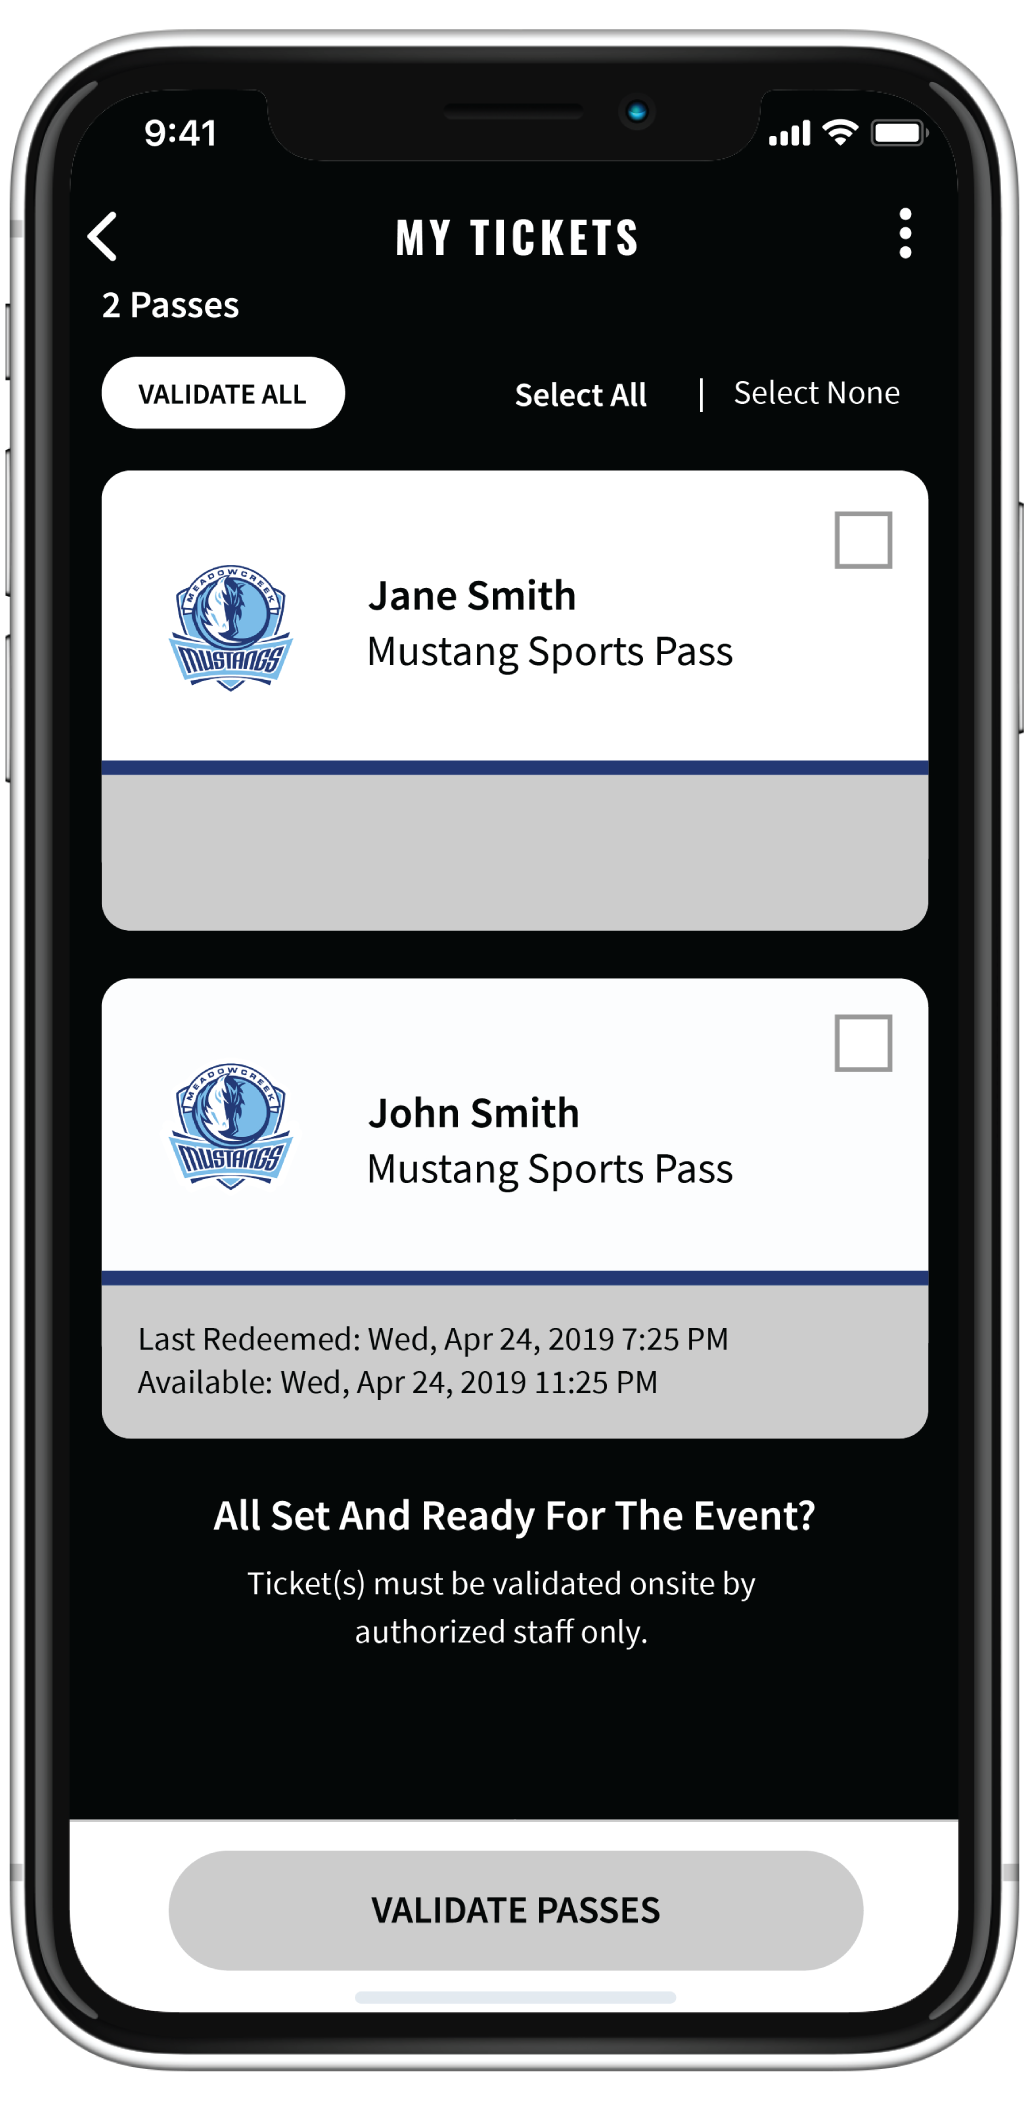 HuddleTickets2019_Assets_Mobile Pass 4.png